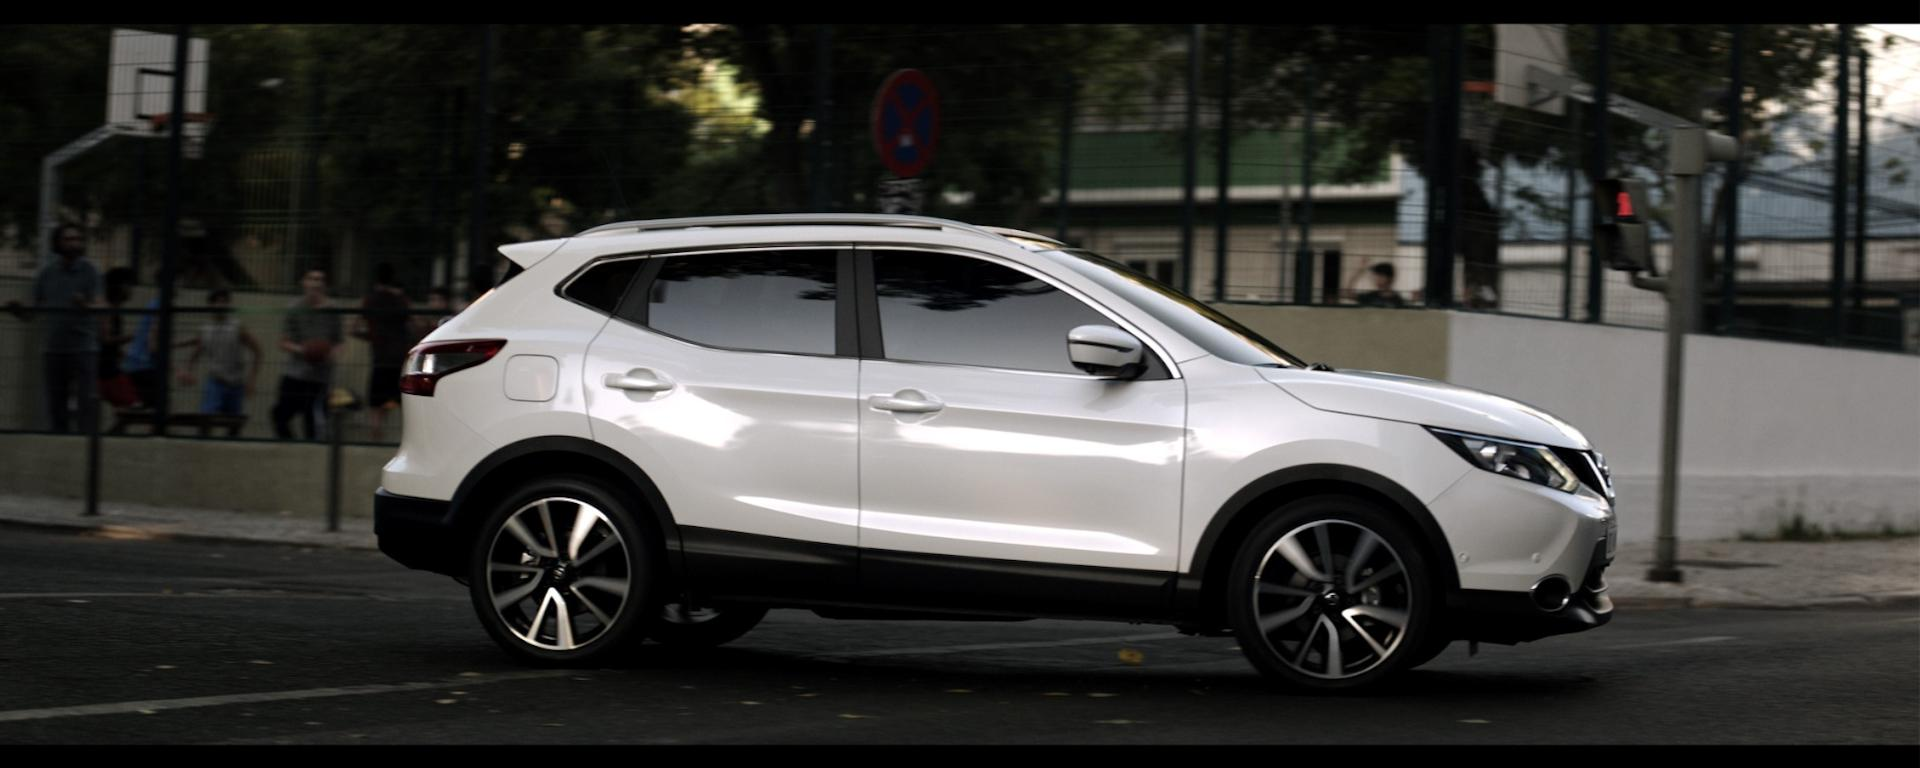 Nissan Qashqai Private Lease Een Nissan Qashqai Leasen Vanaf 356 Athlon Essential